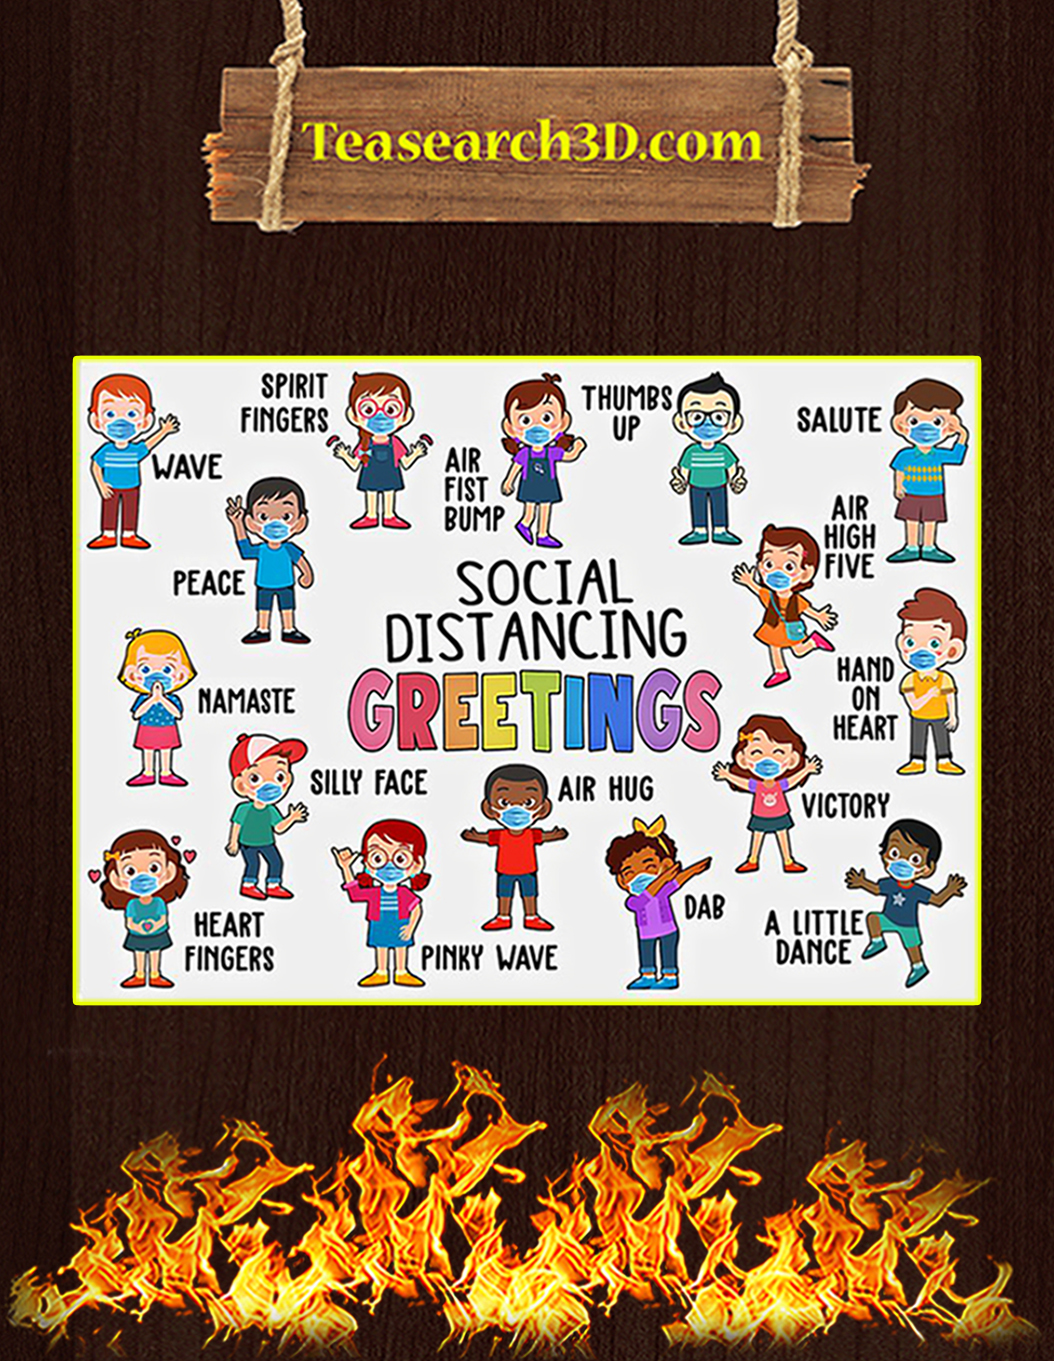 Classroom Social Distancing Greetings Poster A1